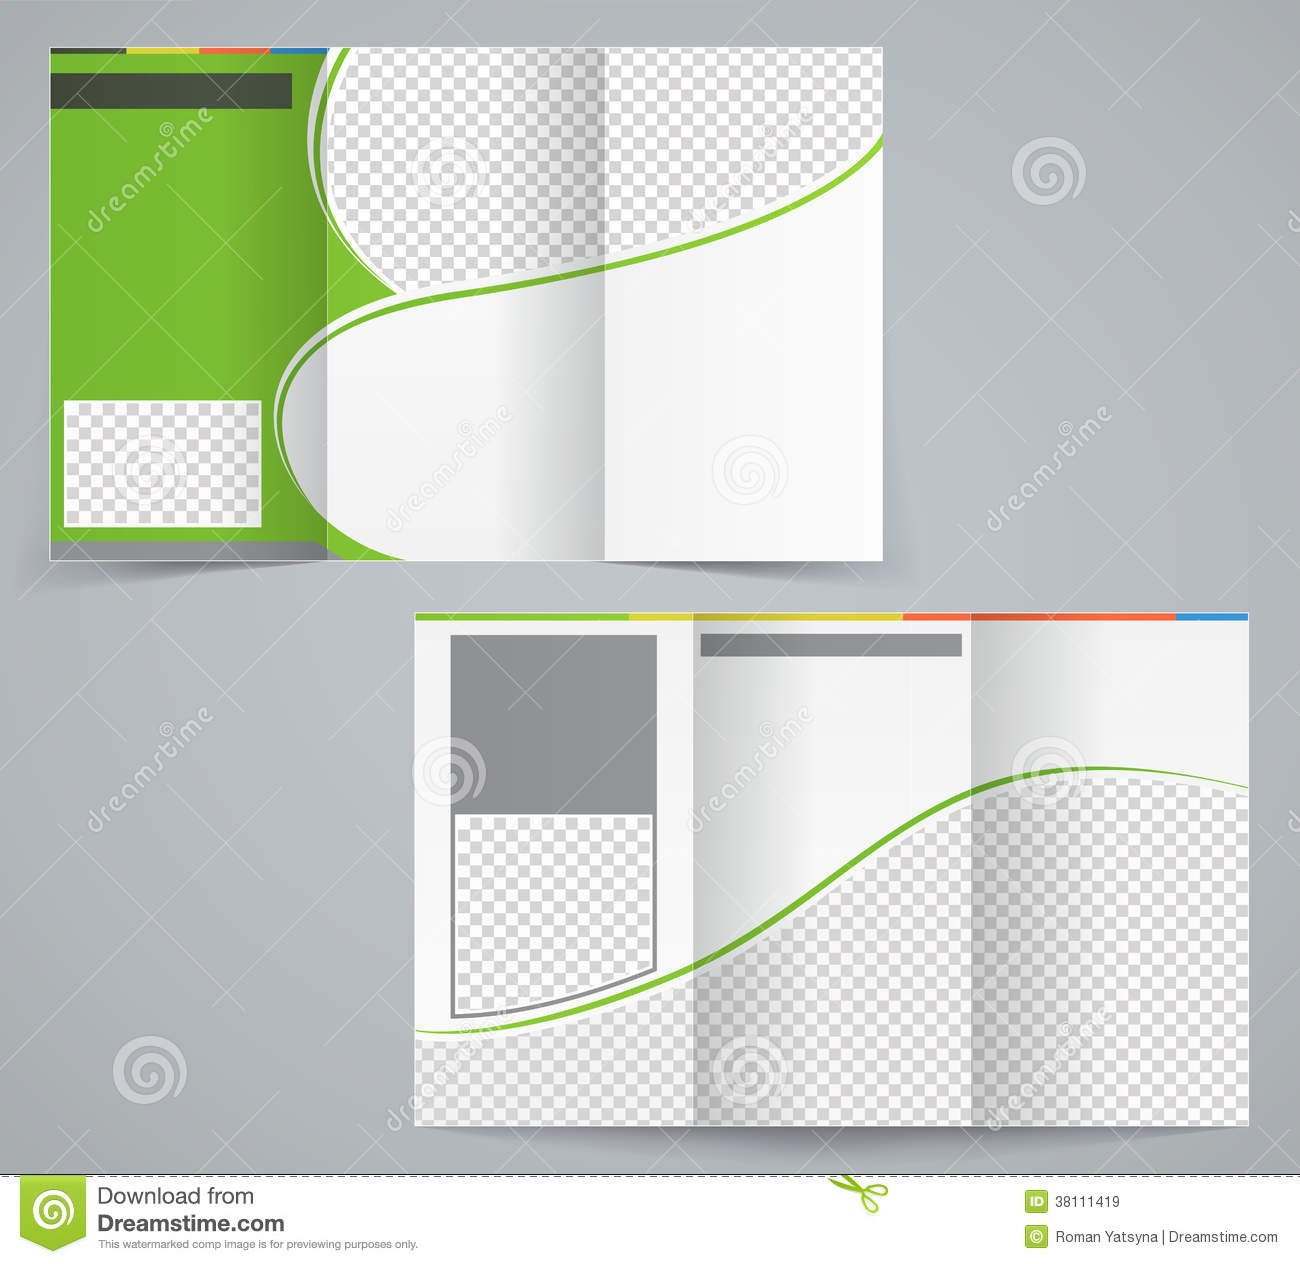 Tri Fold Brochure Template Illustrator Tri Fold Business Brochure Template Vector Green Stock